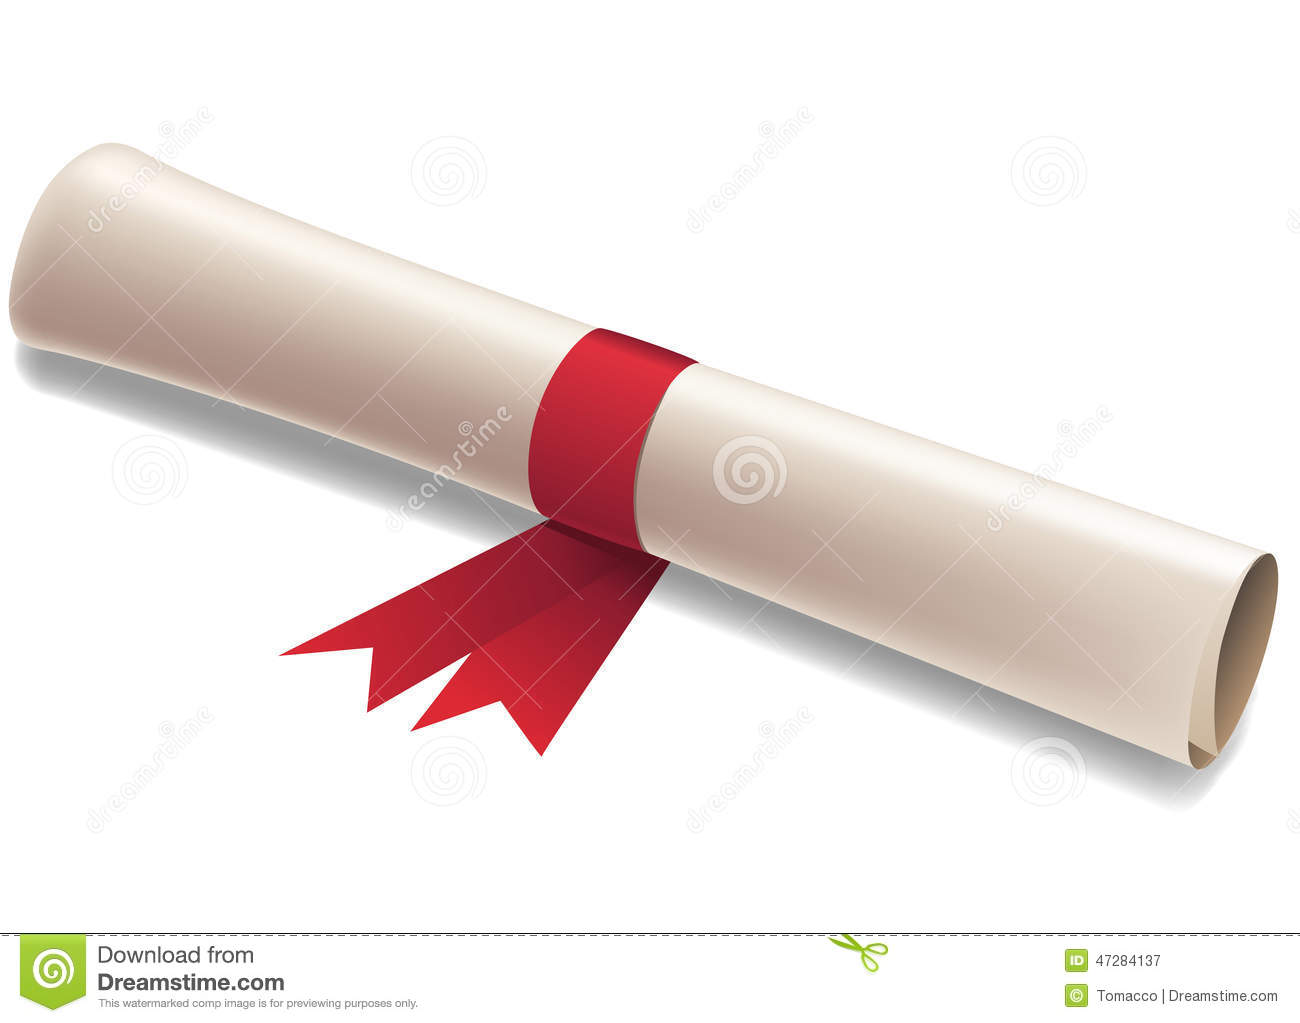 Diploma Graduation Award Illustration Stock Illustration - Image ...